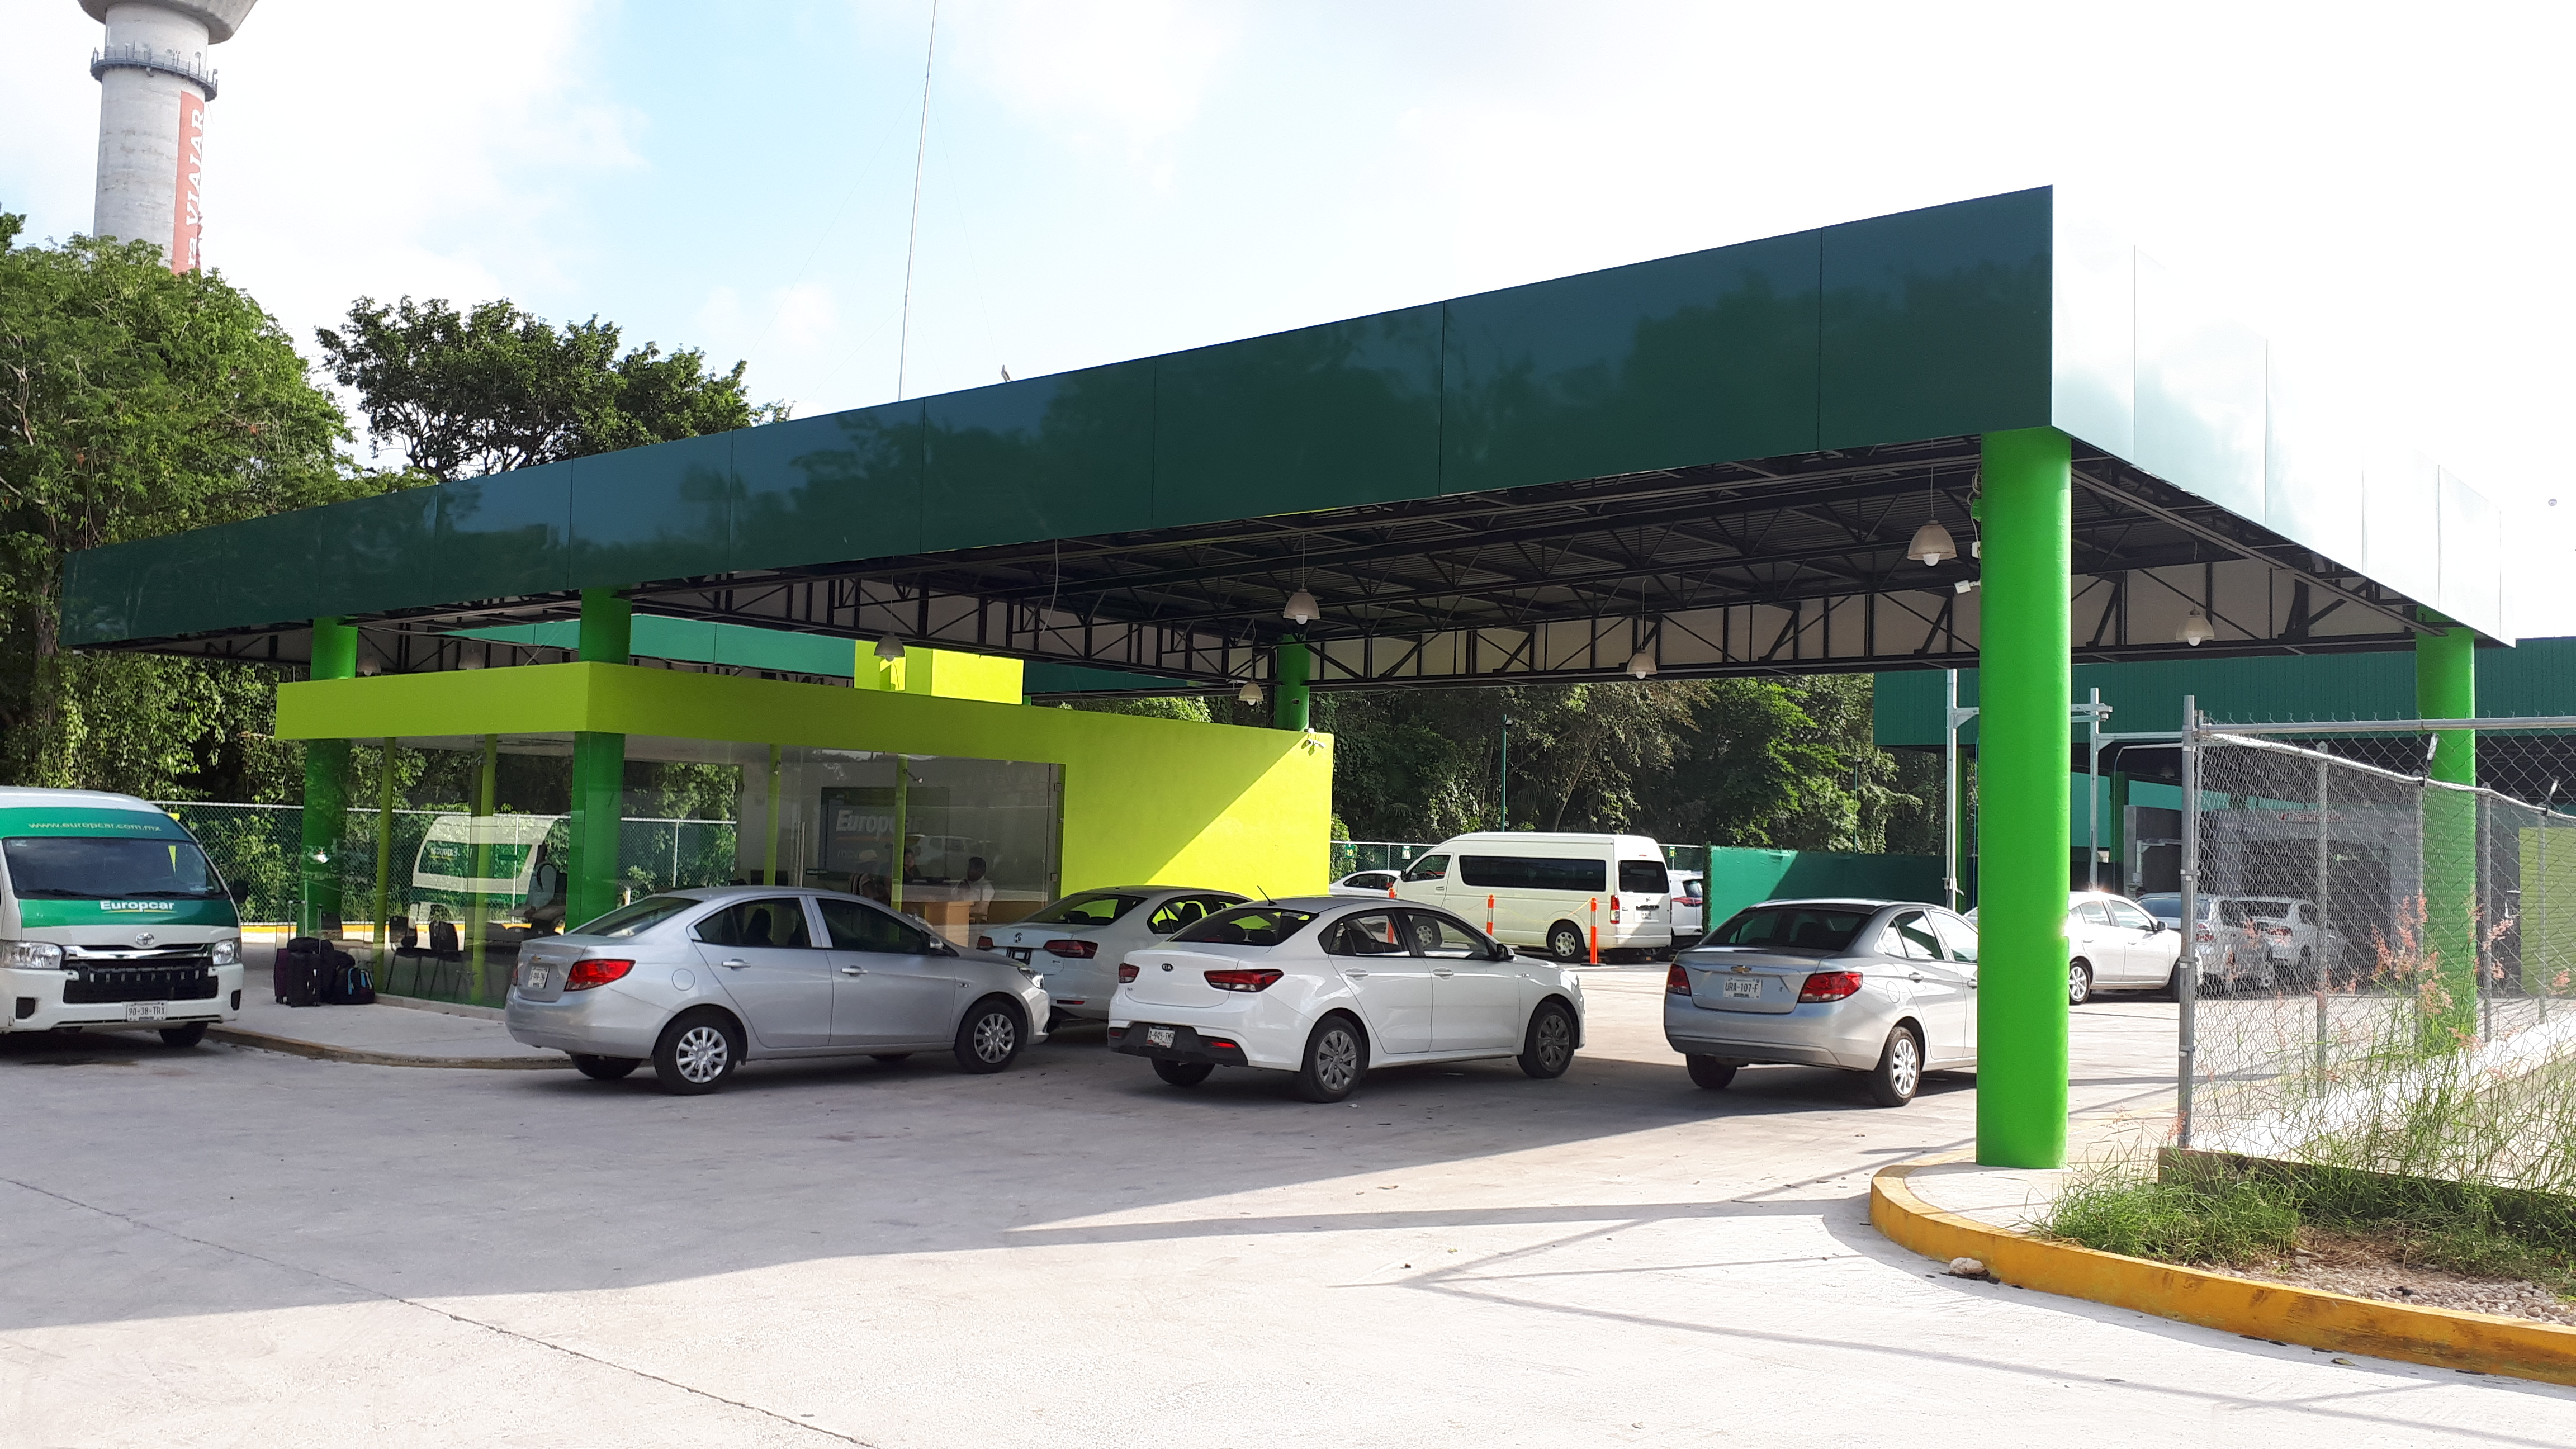 Europcar Mexico Recruits Laid-Off Best Buy Workers